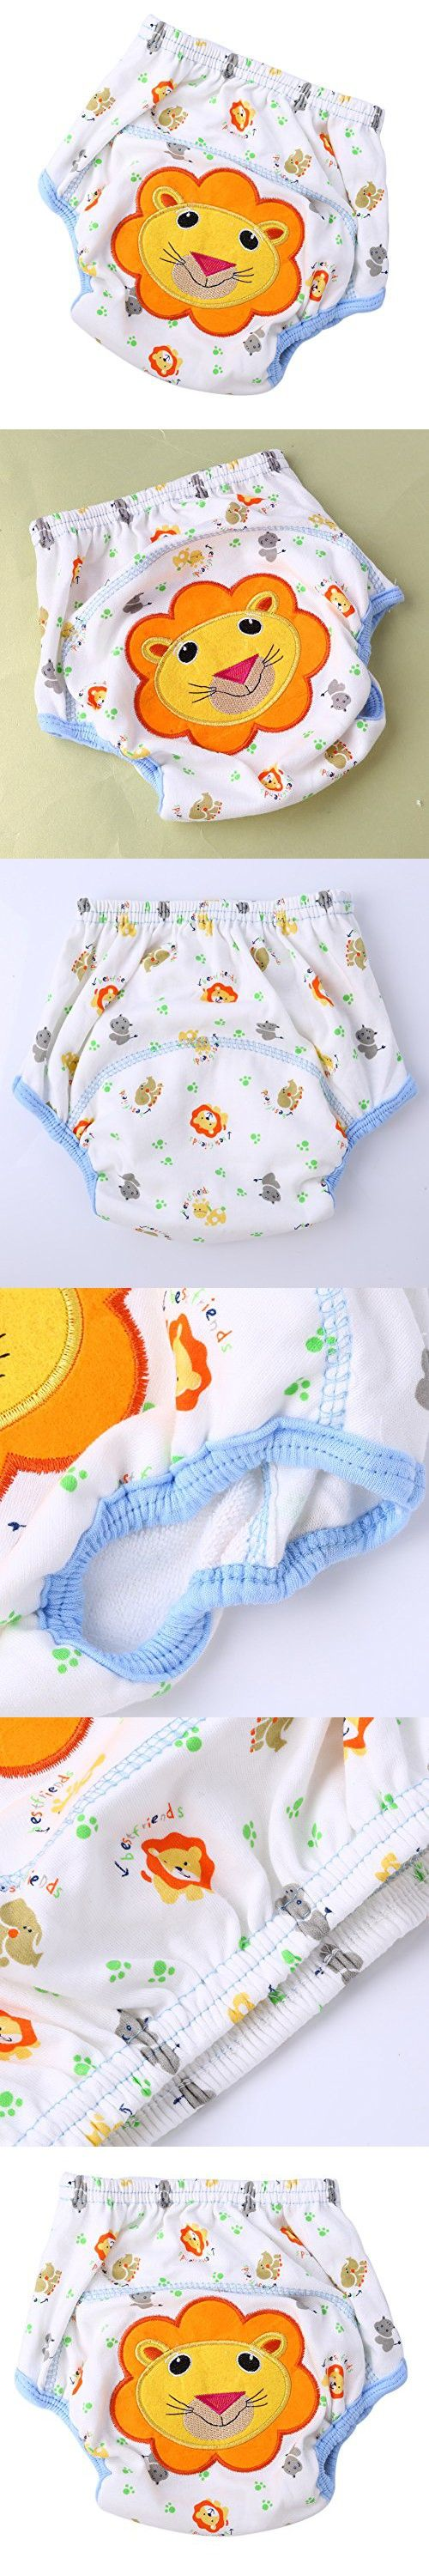 Easydeal Toddler Baby Cotton Cartoon Animal Waterproof Training Pants Kids Potty Diaper Nappy Underwear (100:Weight Advice-16kg, Lionet)